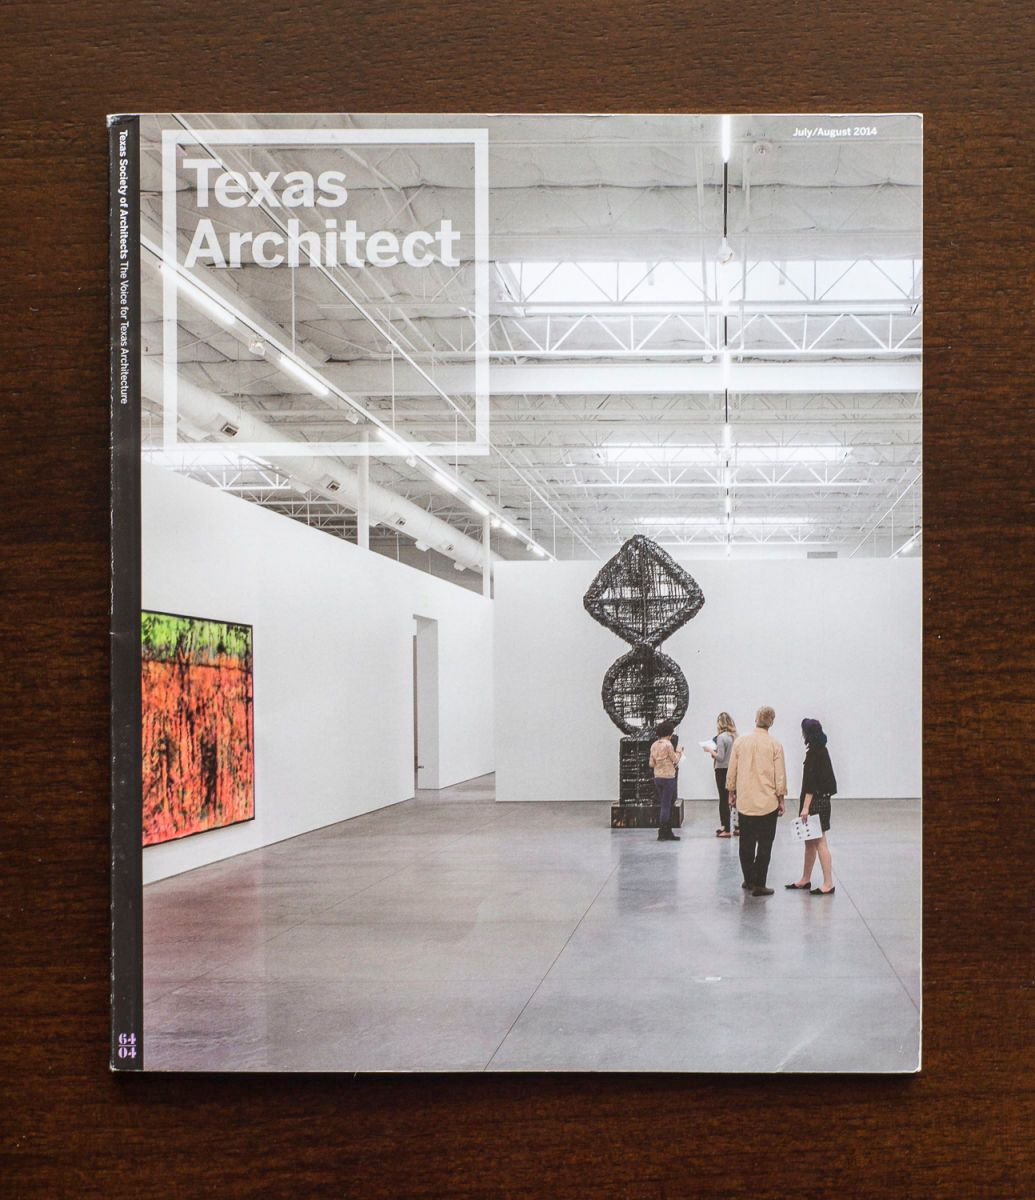 8_1texas_architect_magazine_lr_8429.jpg